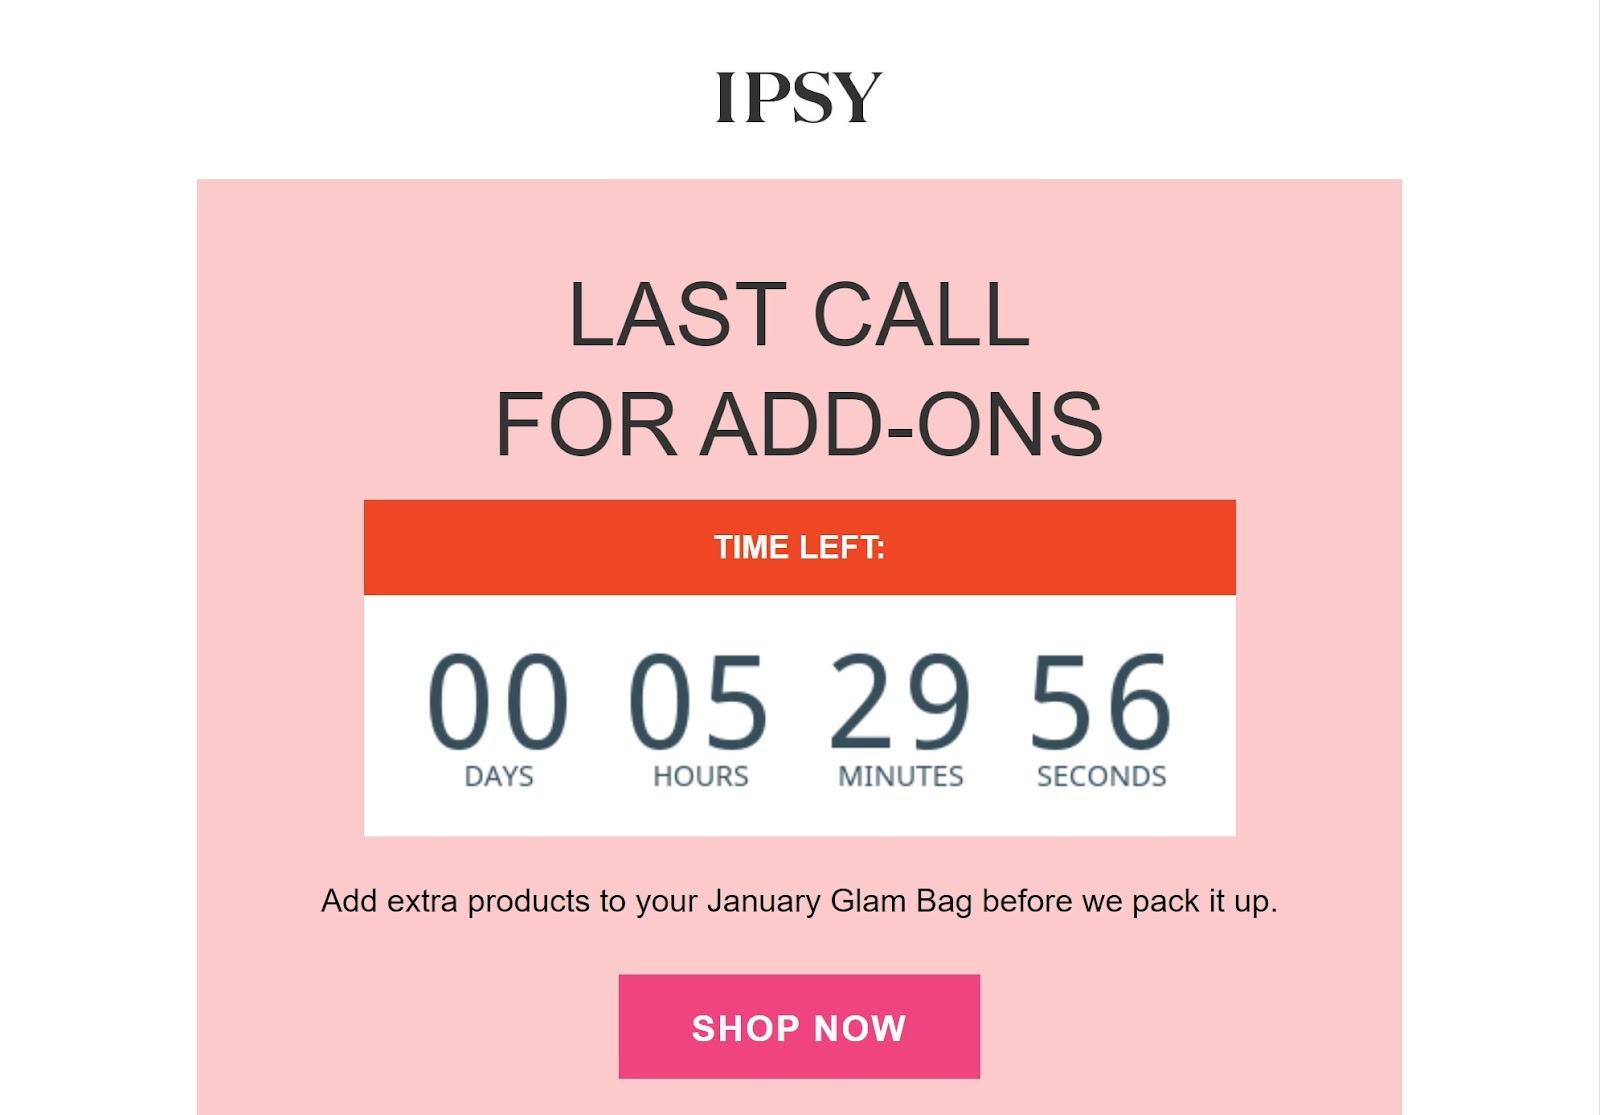 Example of a WooCommerce followup email from Ipsy